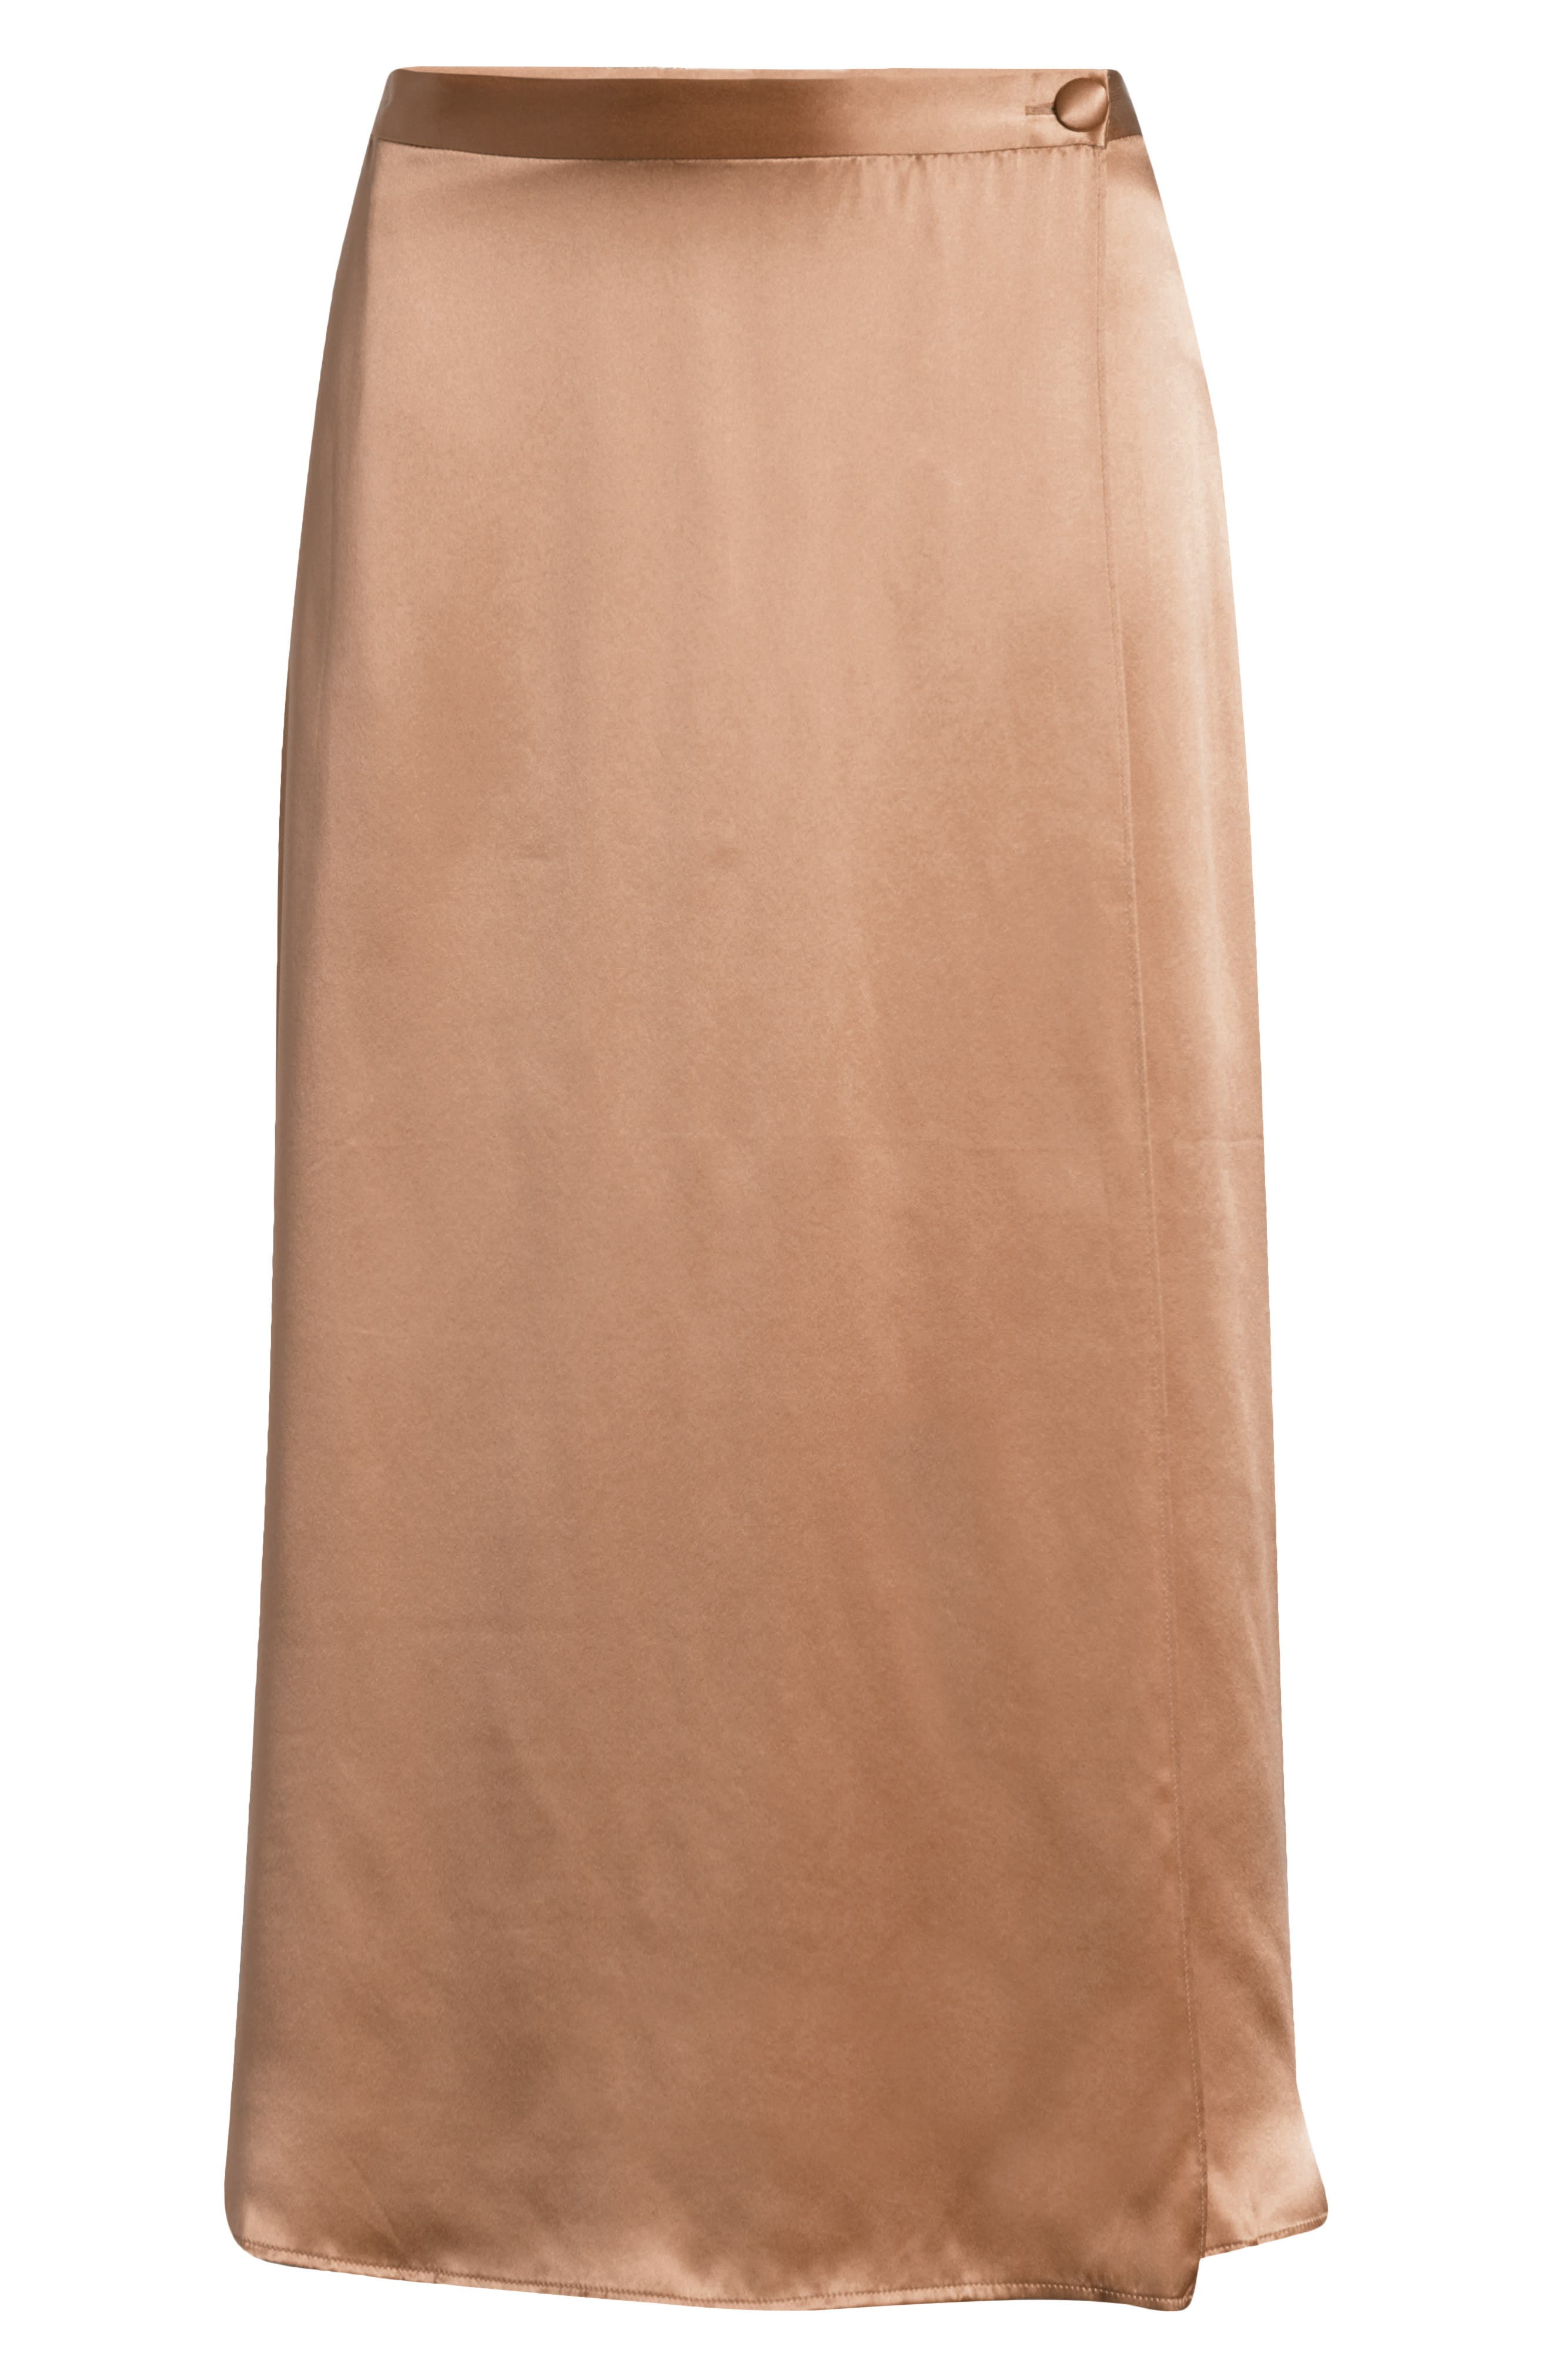 Take on the day or night in floaty style with this slippery silk wrap skirt in a desirable midi length that is fun to pair with casual and formal pieces alike. Style Name: Reformation Jones Midi Wrap Silk Skirt. Style Number: 6141225. Available in stores.